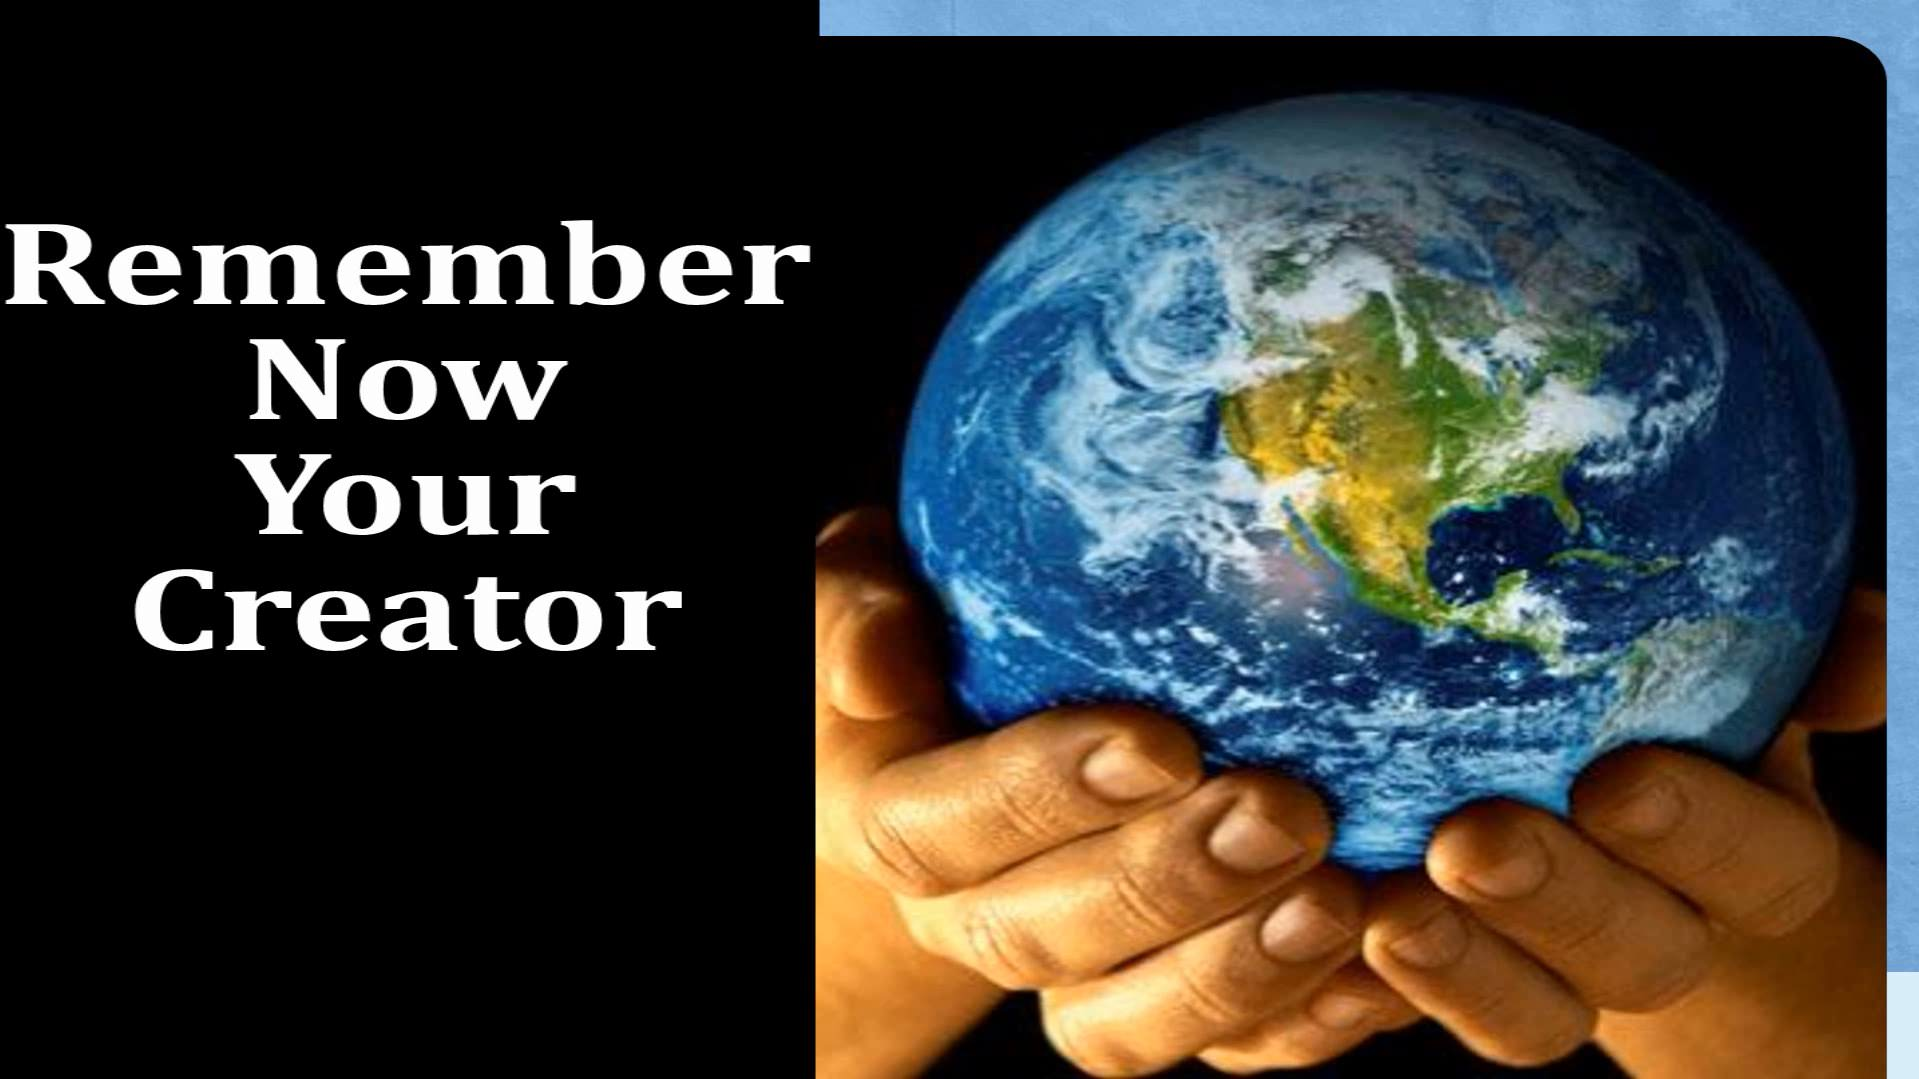 Remember Now Your Creator